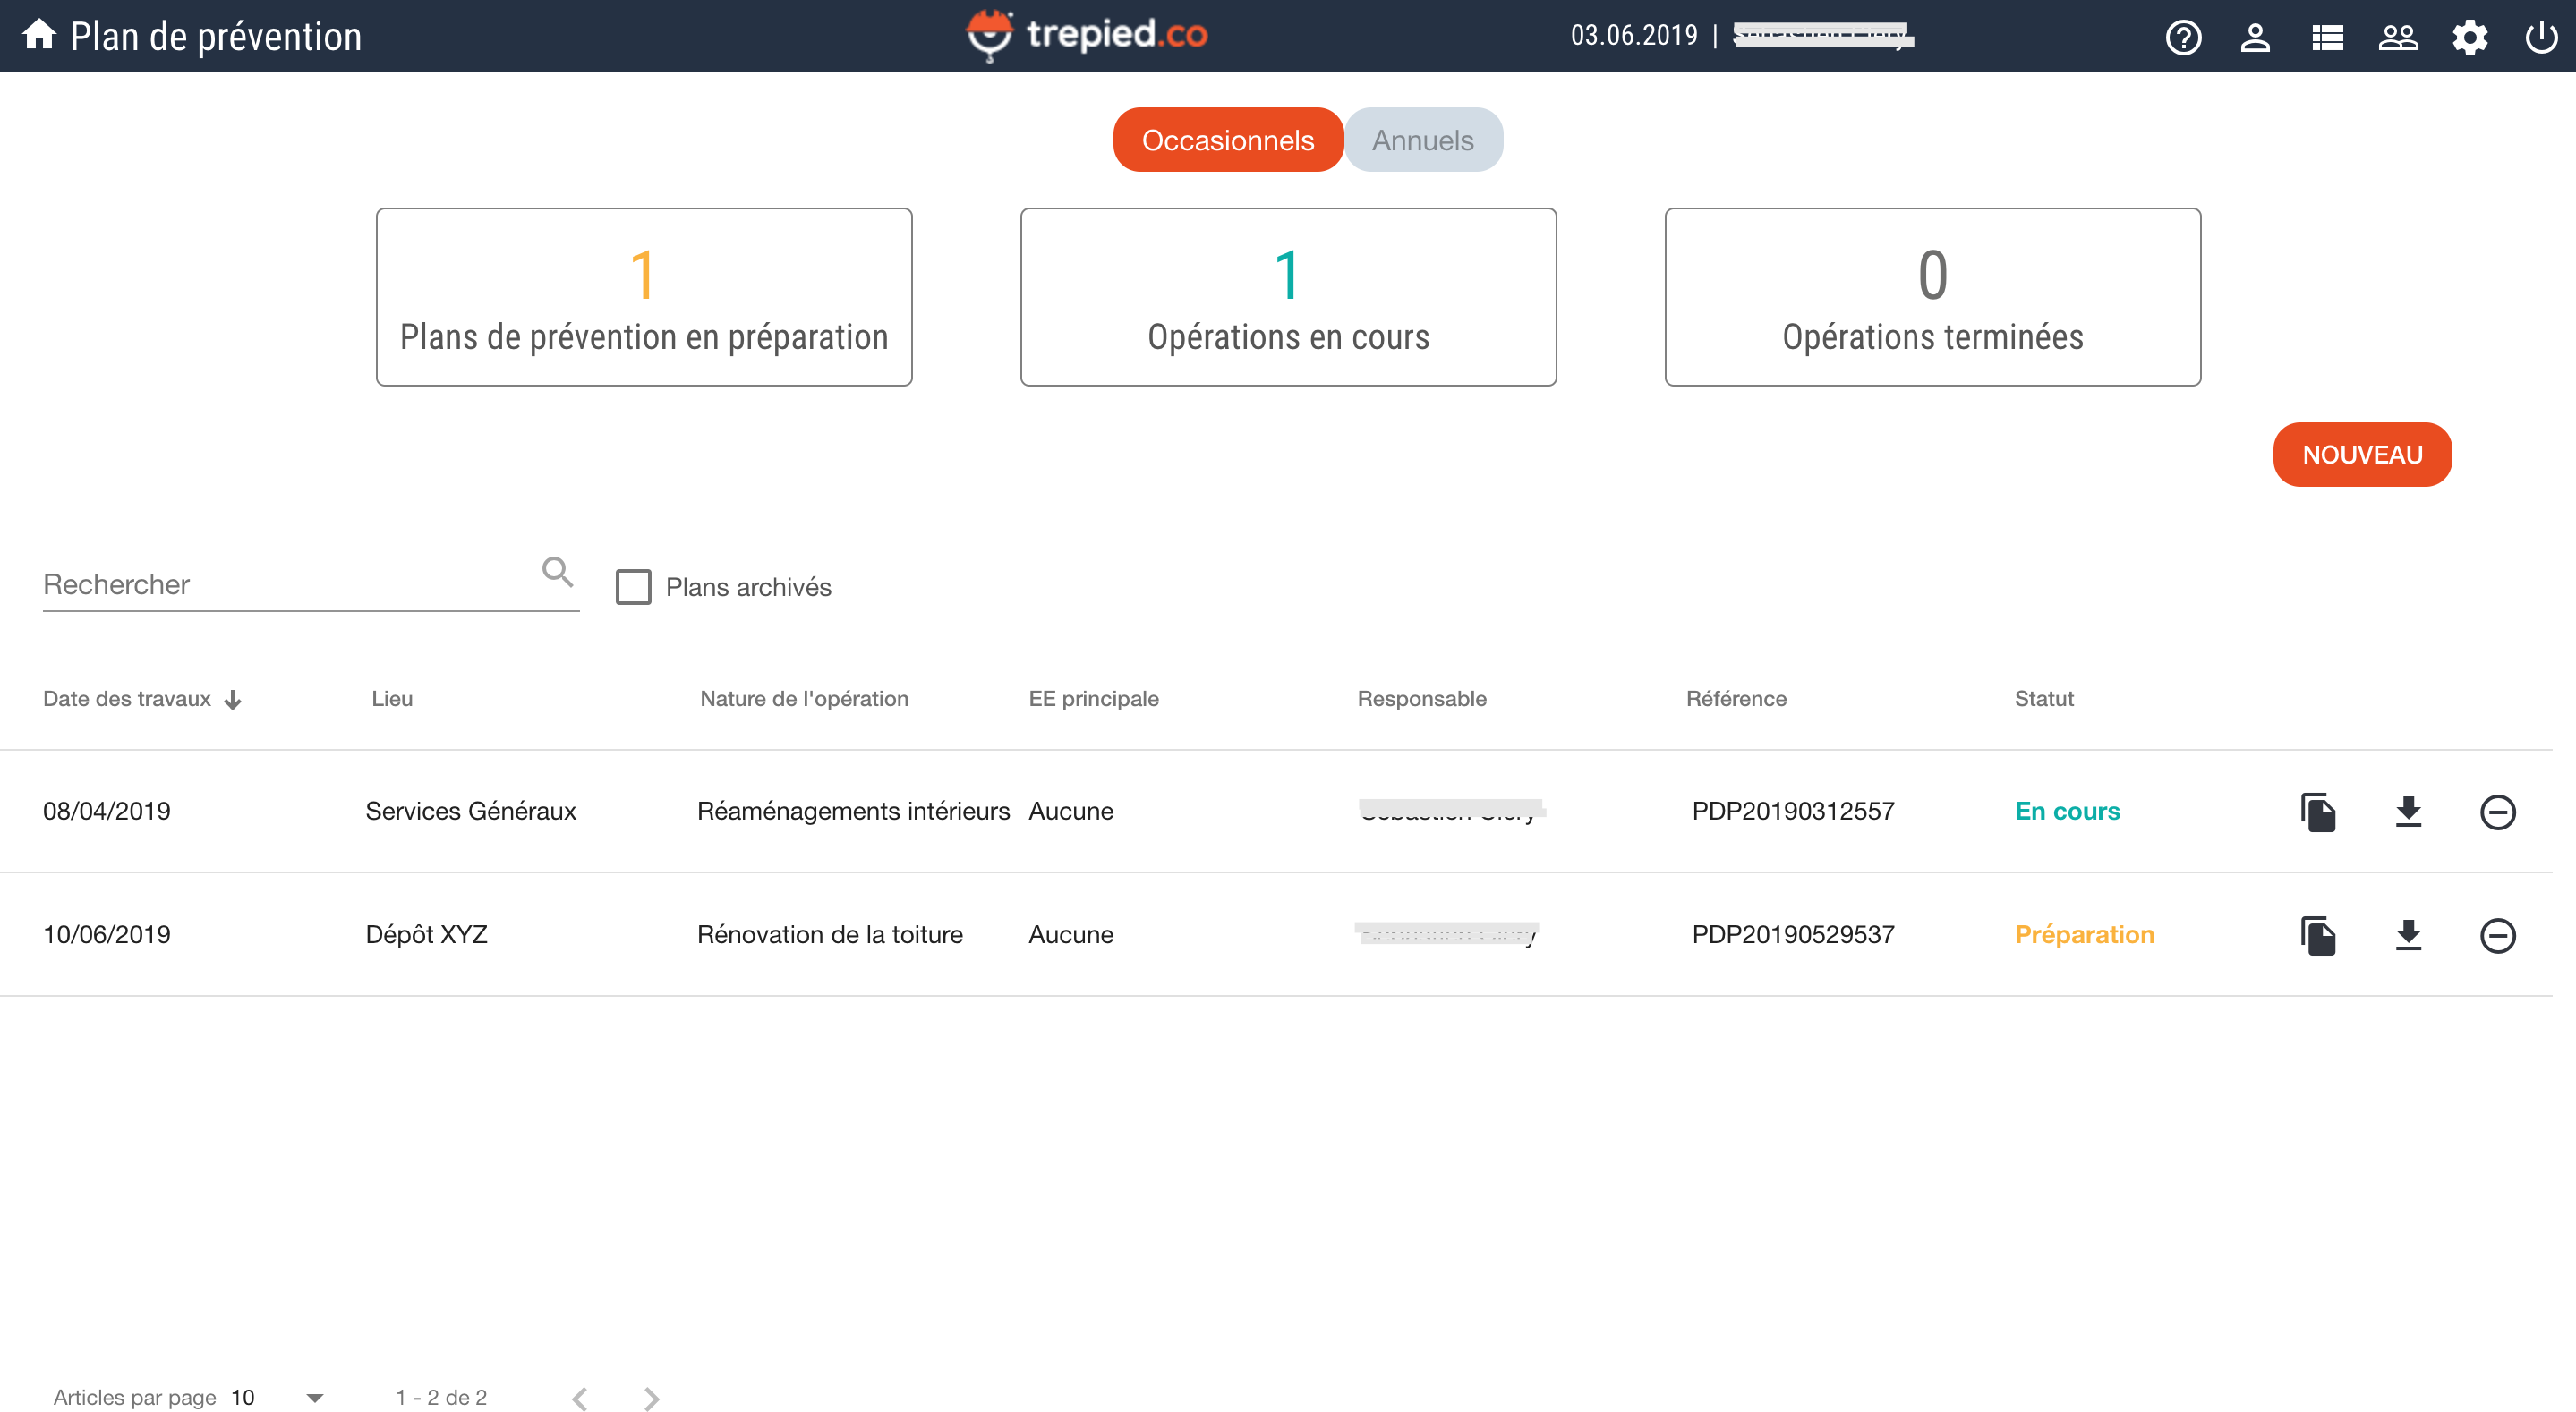 trepied.co-pdp dashboard